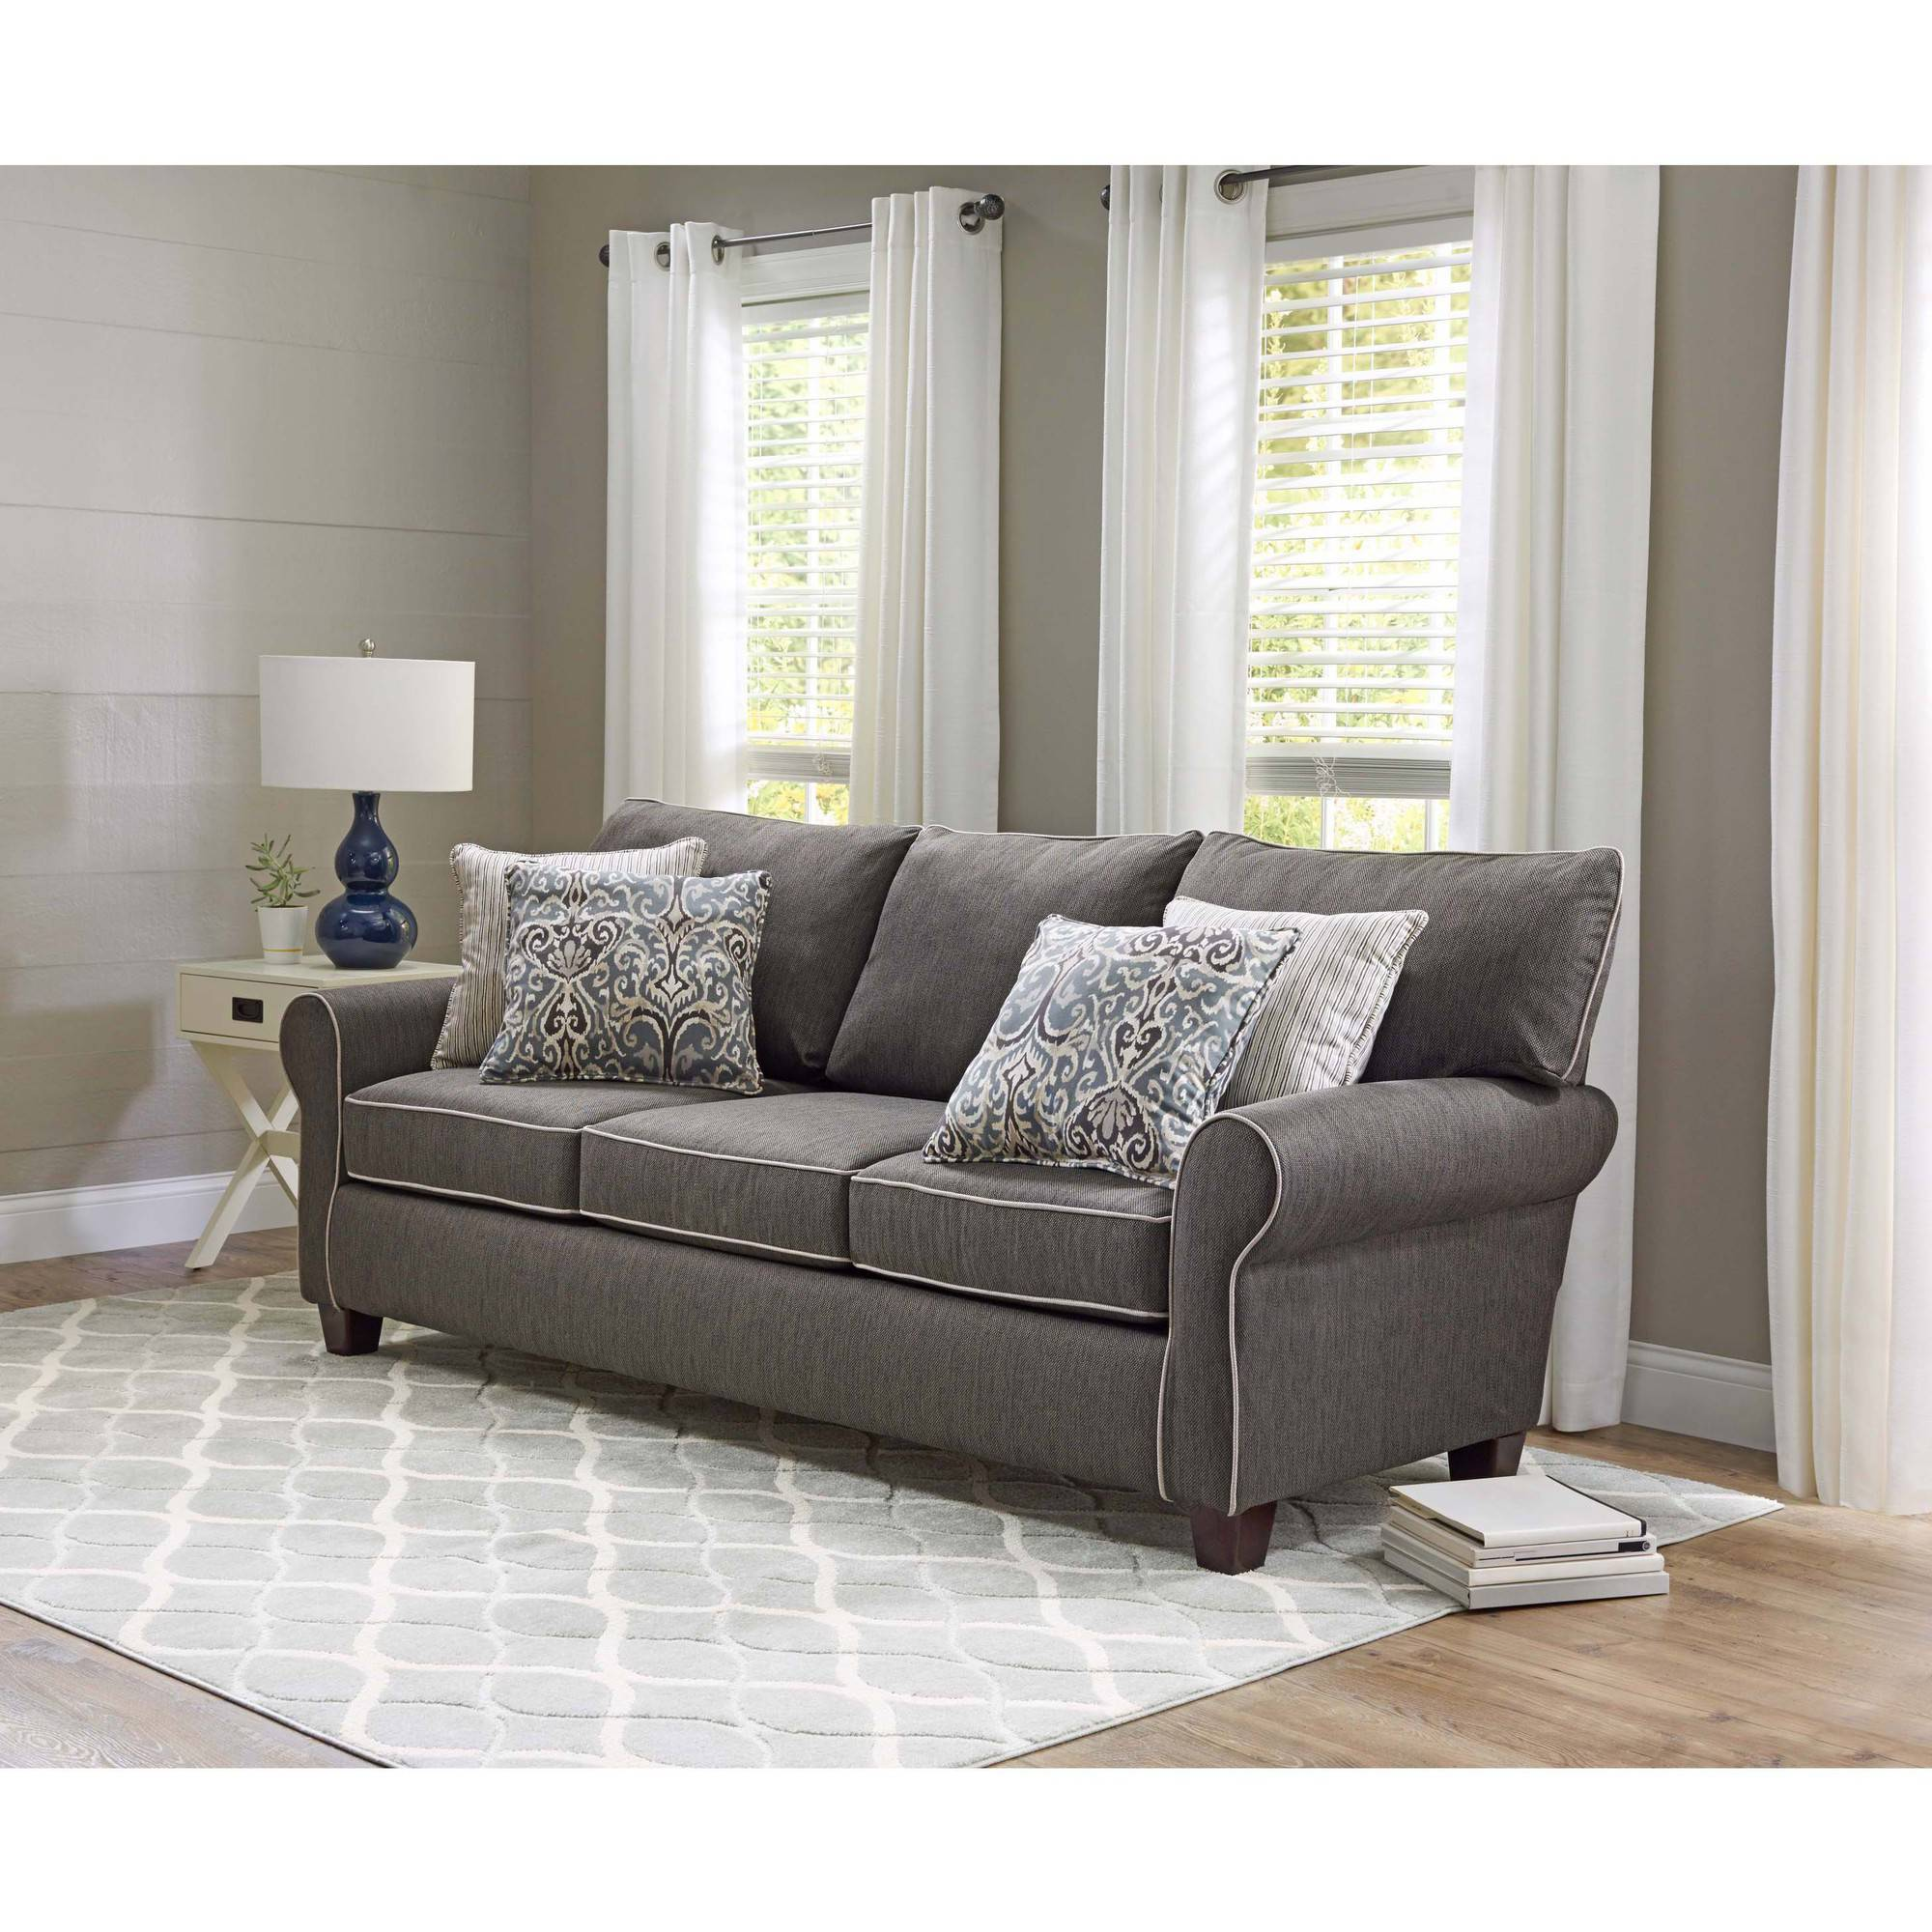 sofa in walmart what are the dimensions of a queen size sleeper signature design by ashley alenya com